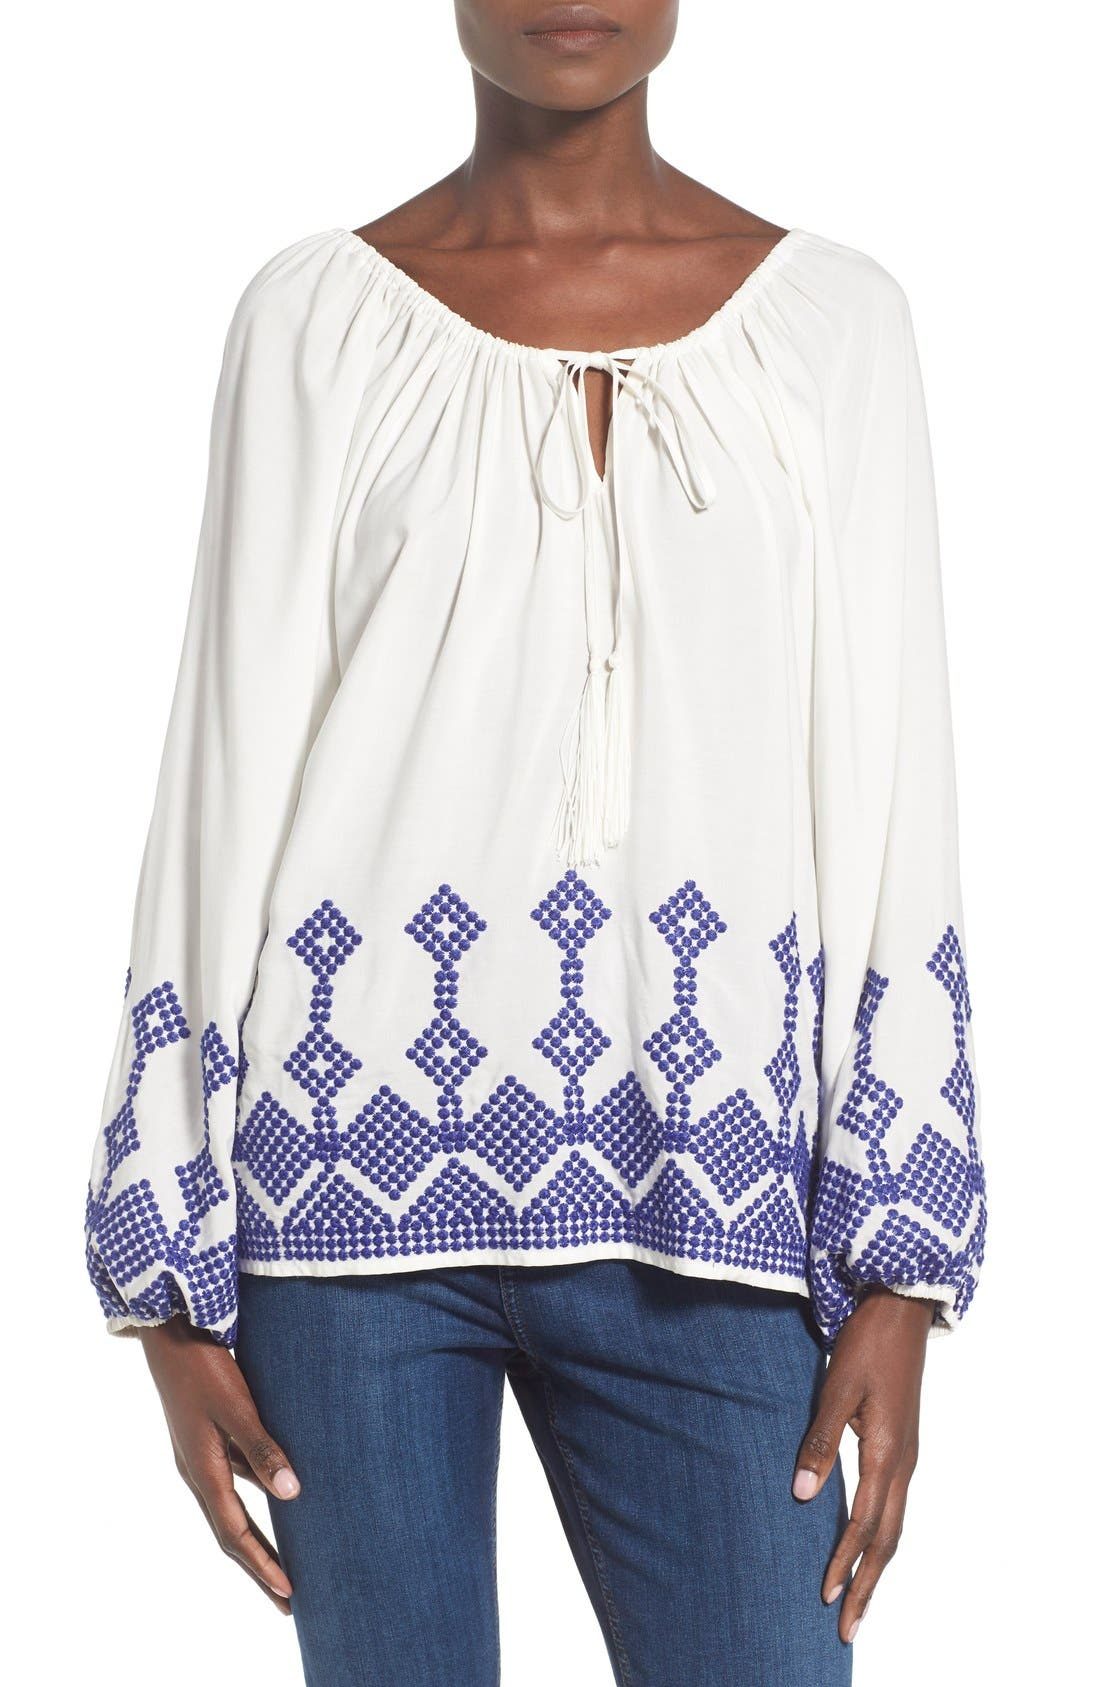 Alternate Image 1 Selected - devlin 'Irene' Embroidered Blouse